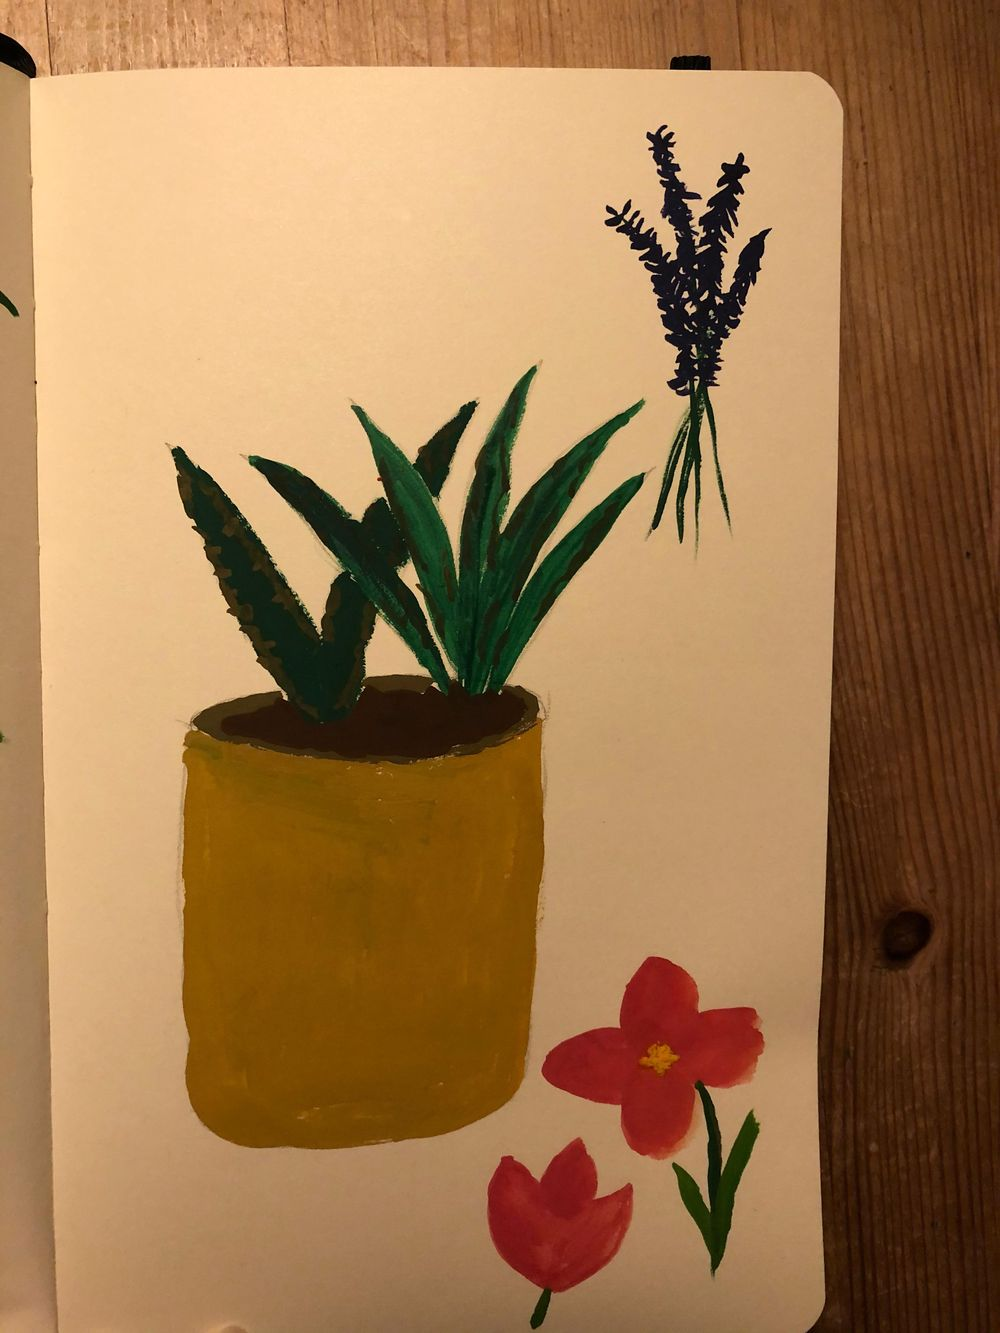 I try Gouache for the first time! - image 3 - student project